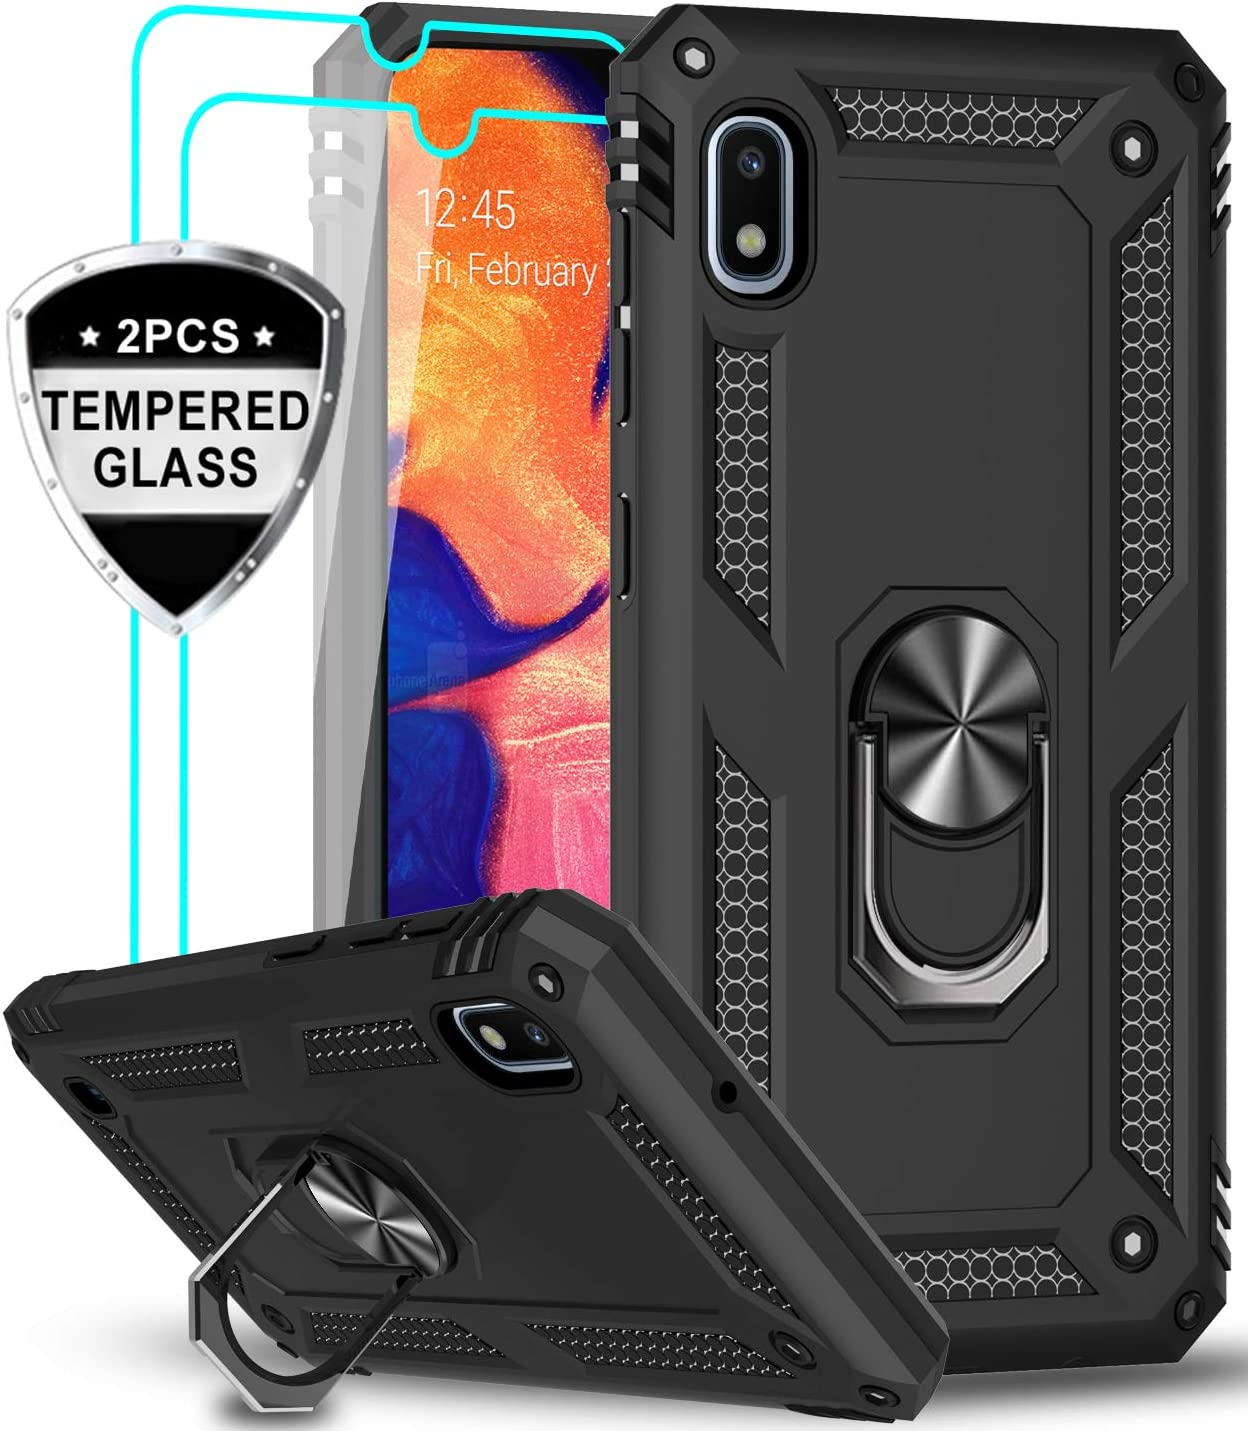 LeYi Samsung Galaxy A10 Case (Not Fit A10E) with Tempered Glass Screen Protector [2 Pack], Military Grade Defender Protective Phone Case with Car Ring Holder Kickstand for Samsung A10, JSFS Black